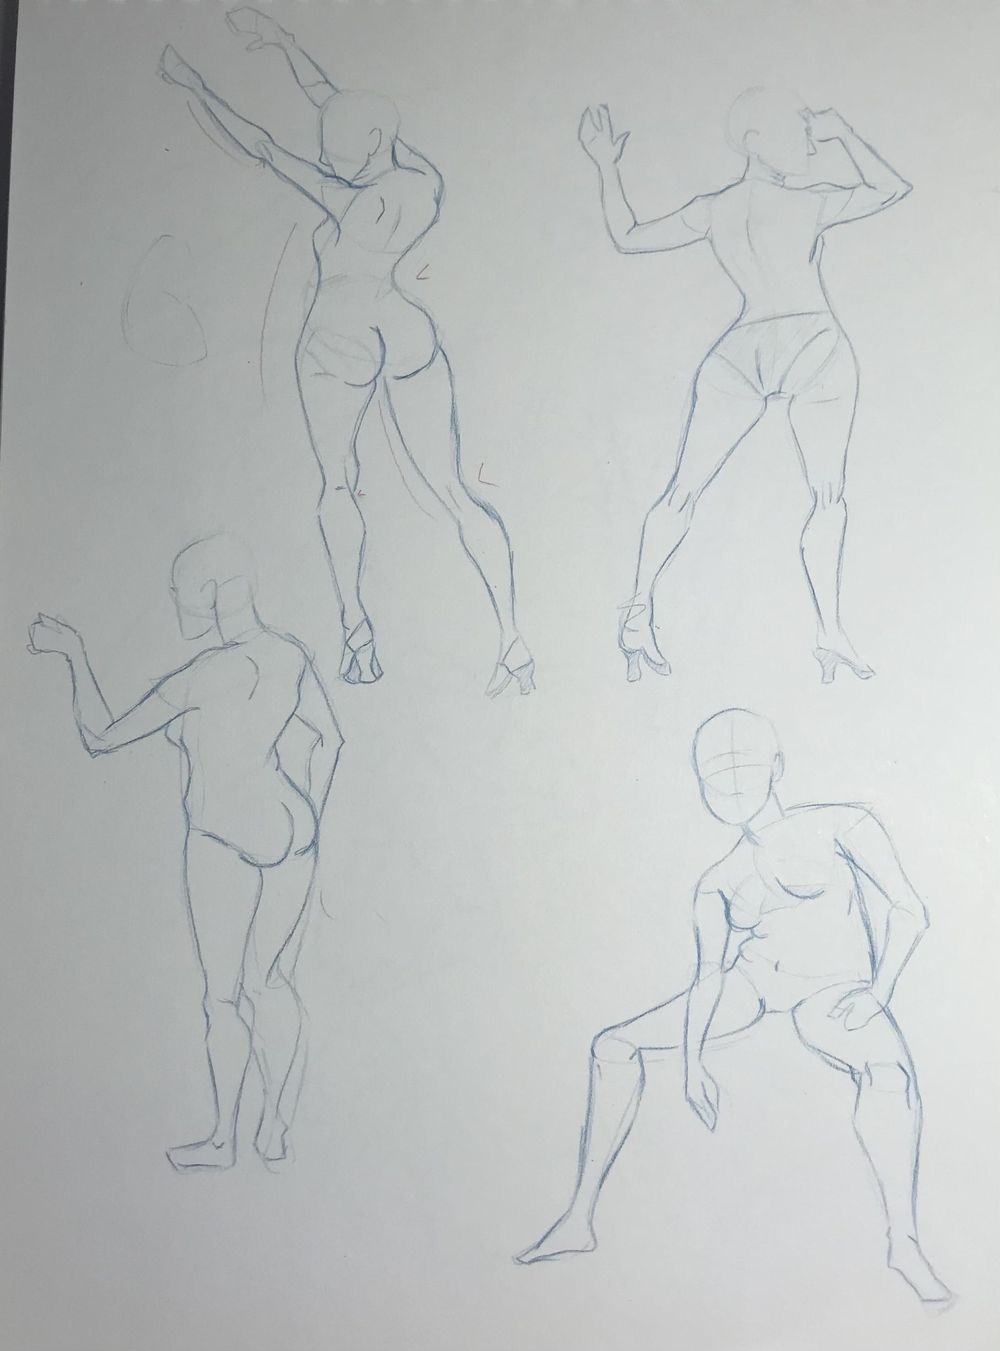 Gesture Drawing Practice (3) - image 5 - student project